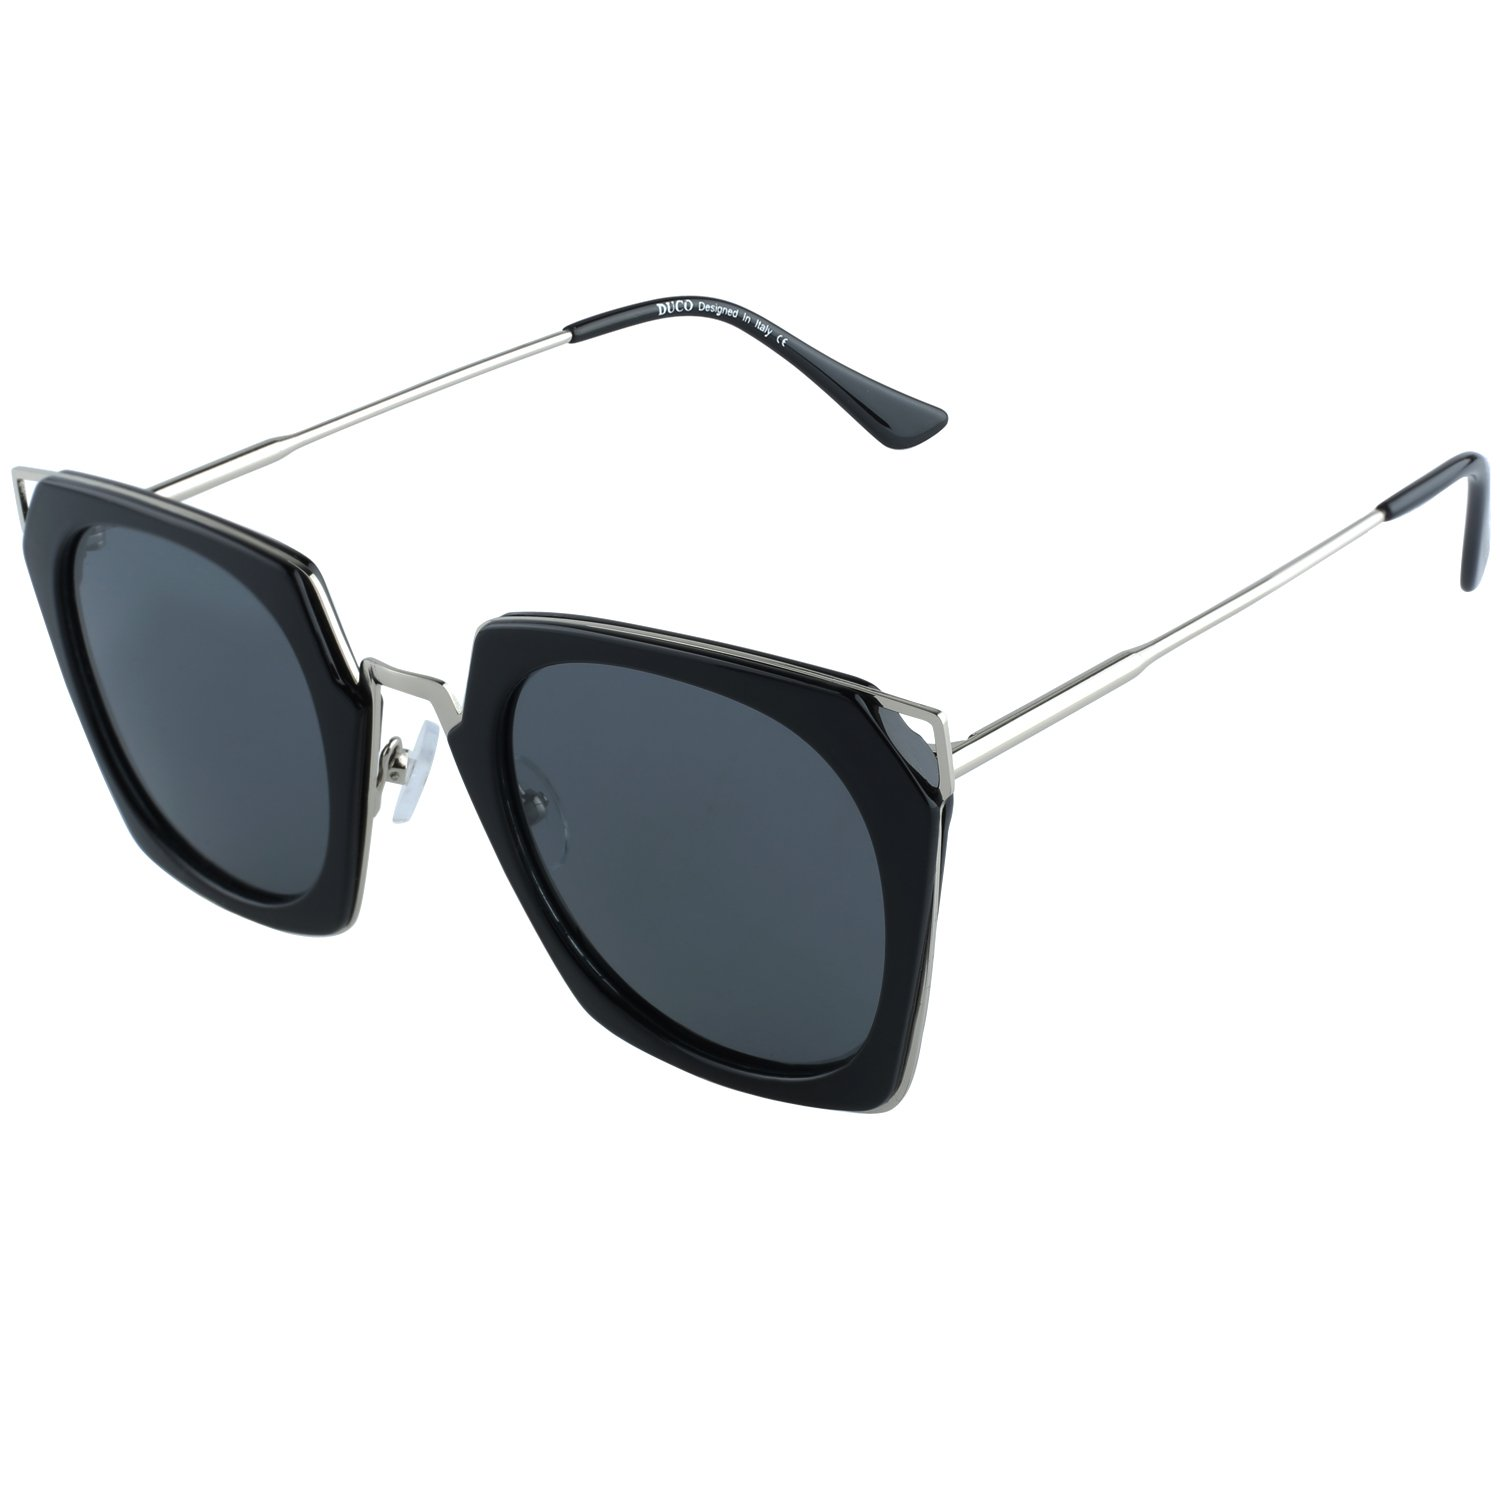 0a37ba2a915 Amazon.com  DUCO Classic Vintage Cateye Polarized Sunglasses For Women 100%  UV Protection W001  Clothing